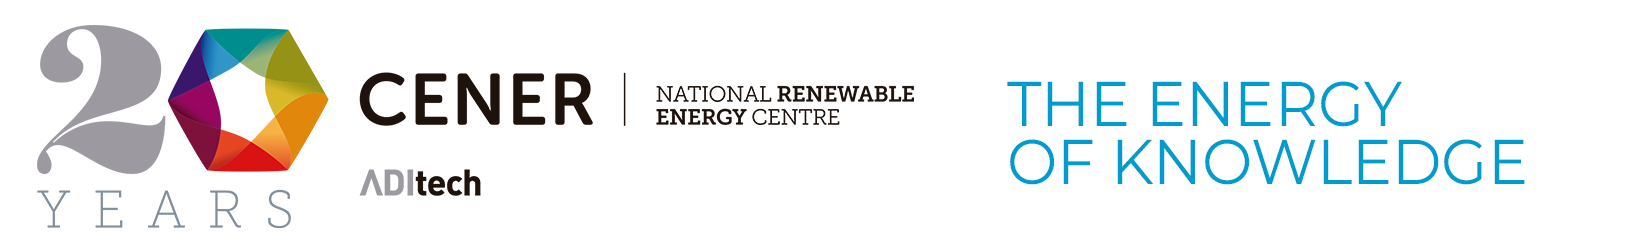 CENER - National Renewable Energy Centre